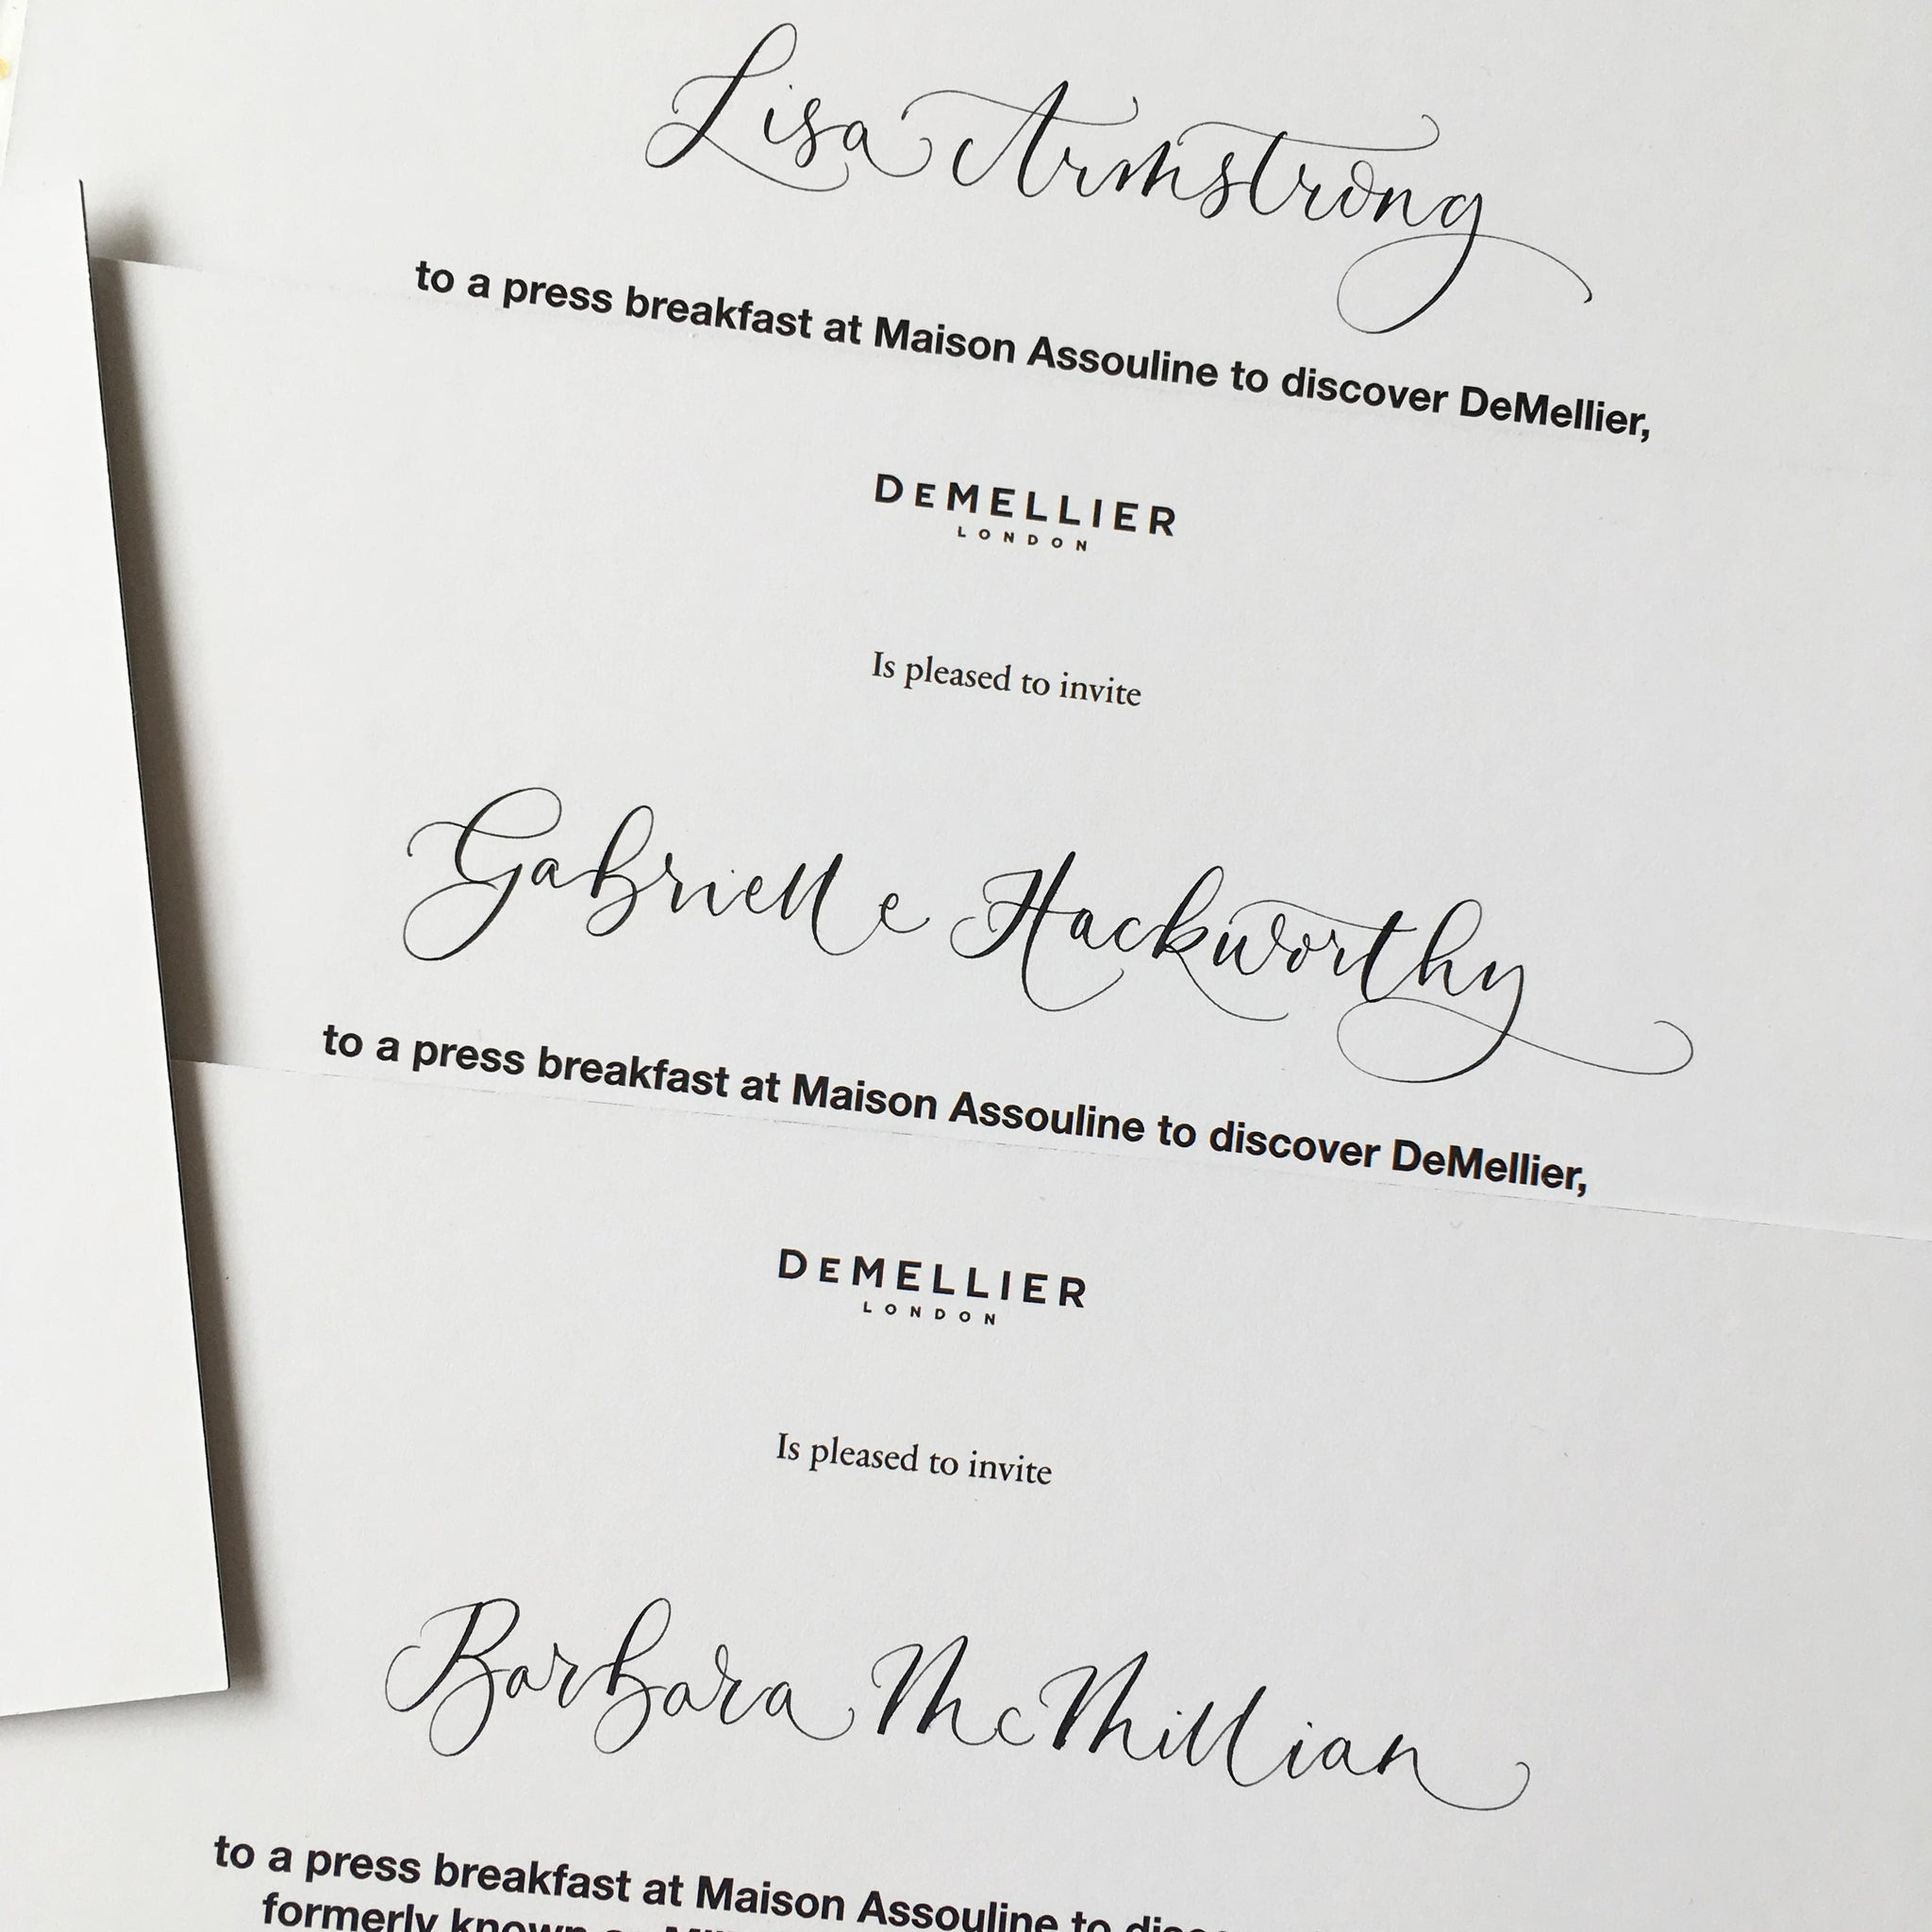 Quill London | Inspiration Fro Our Studio Page | Invitation and envelope addressing // Demellier